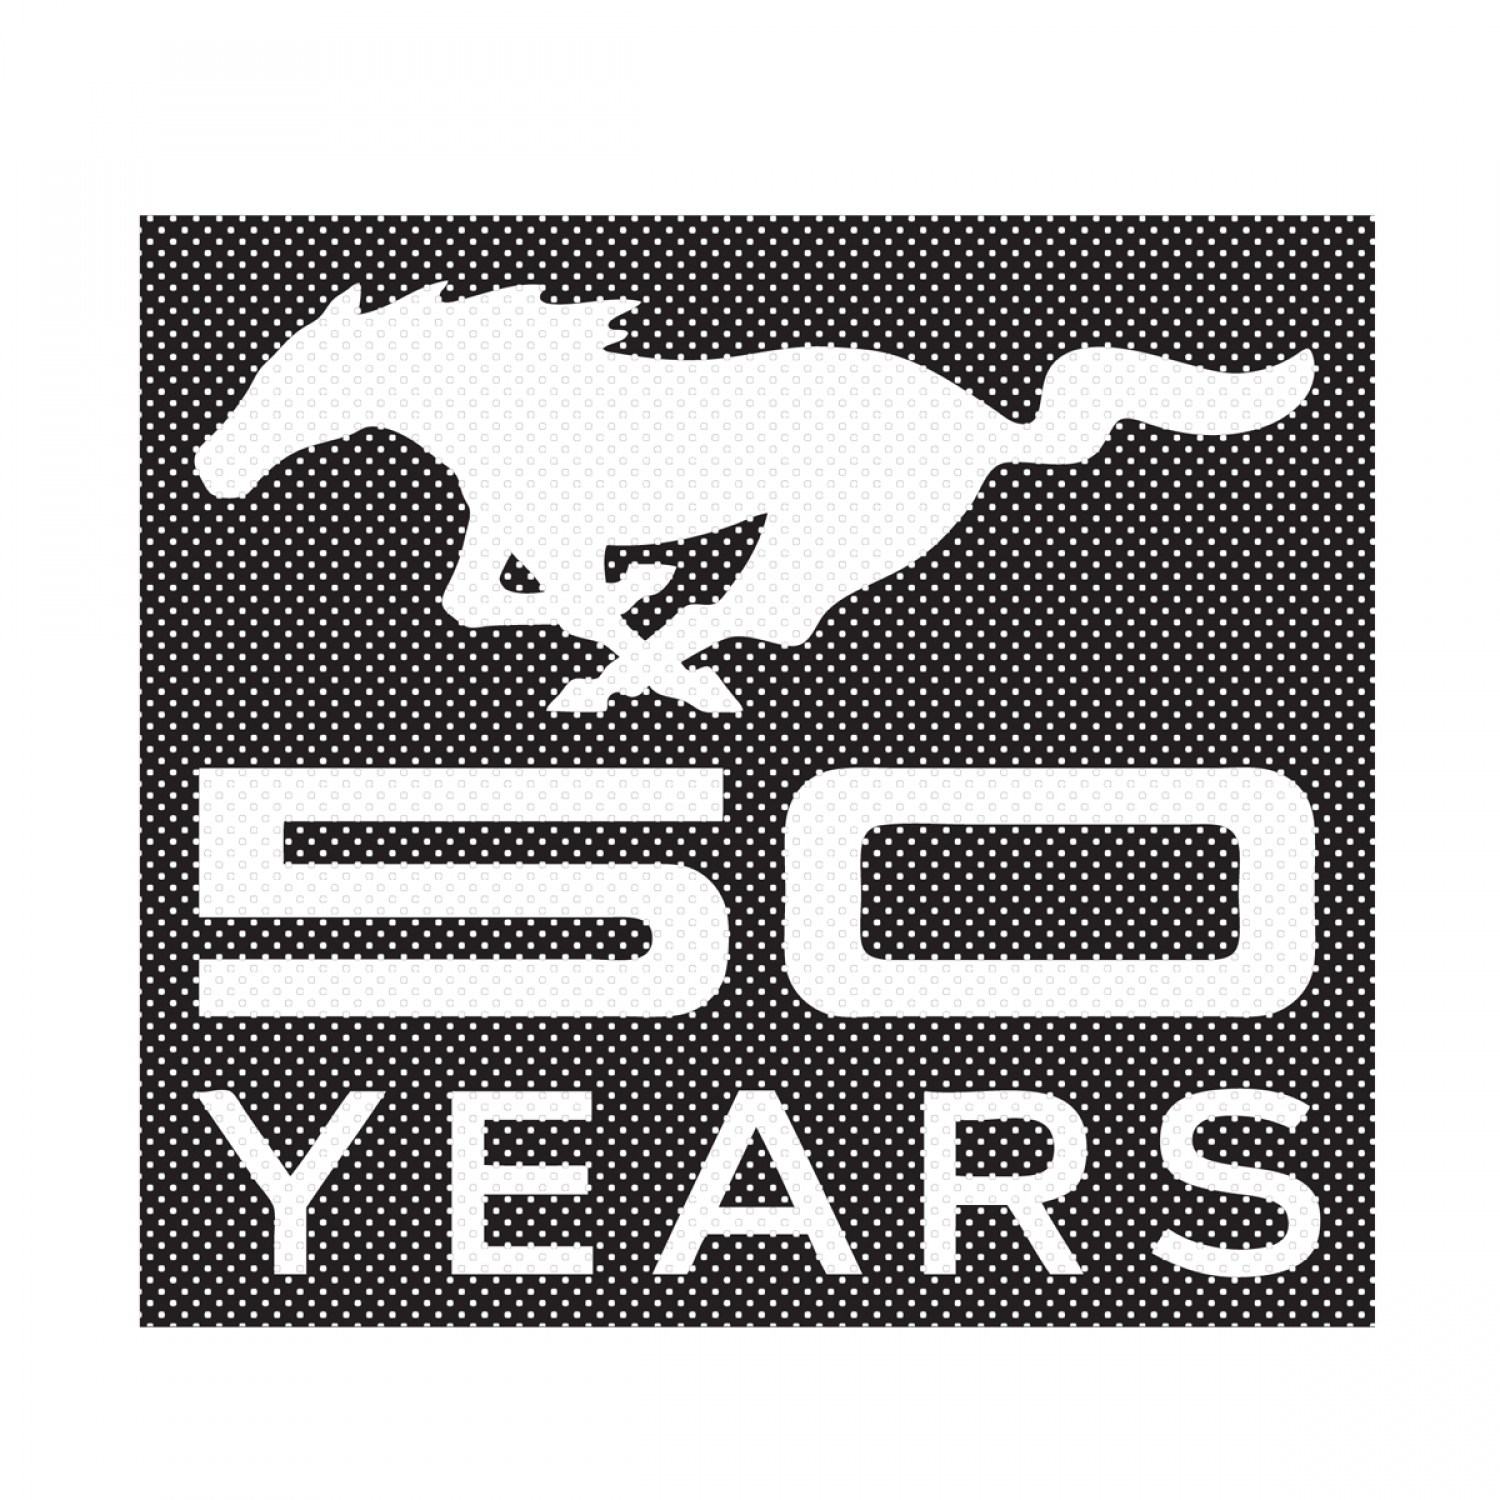 "Ford Mustang 50 Years 12"" 3M Perforated Unobstructed View Window Graphic Decorative Decal"